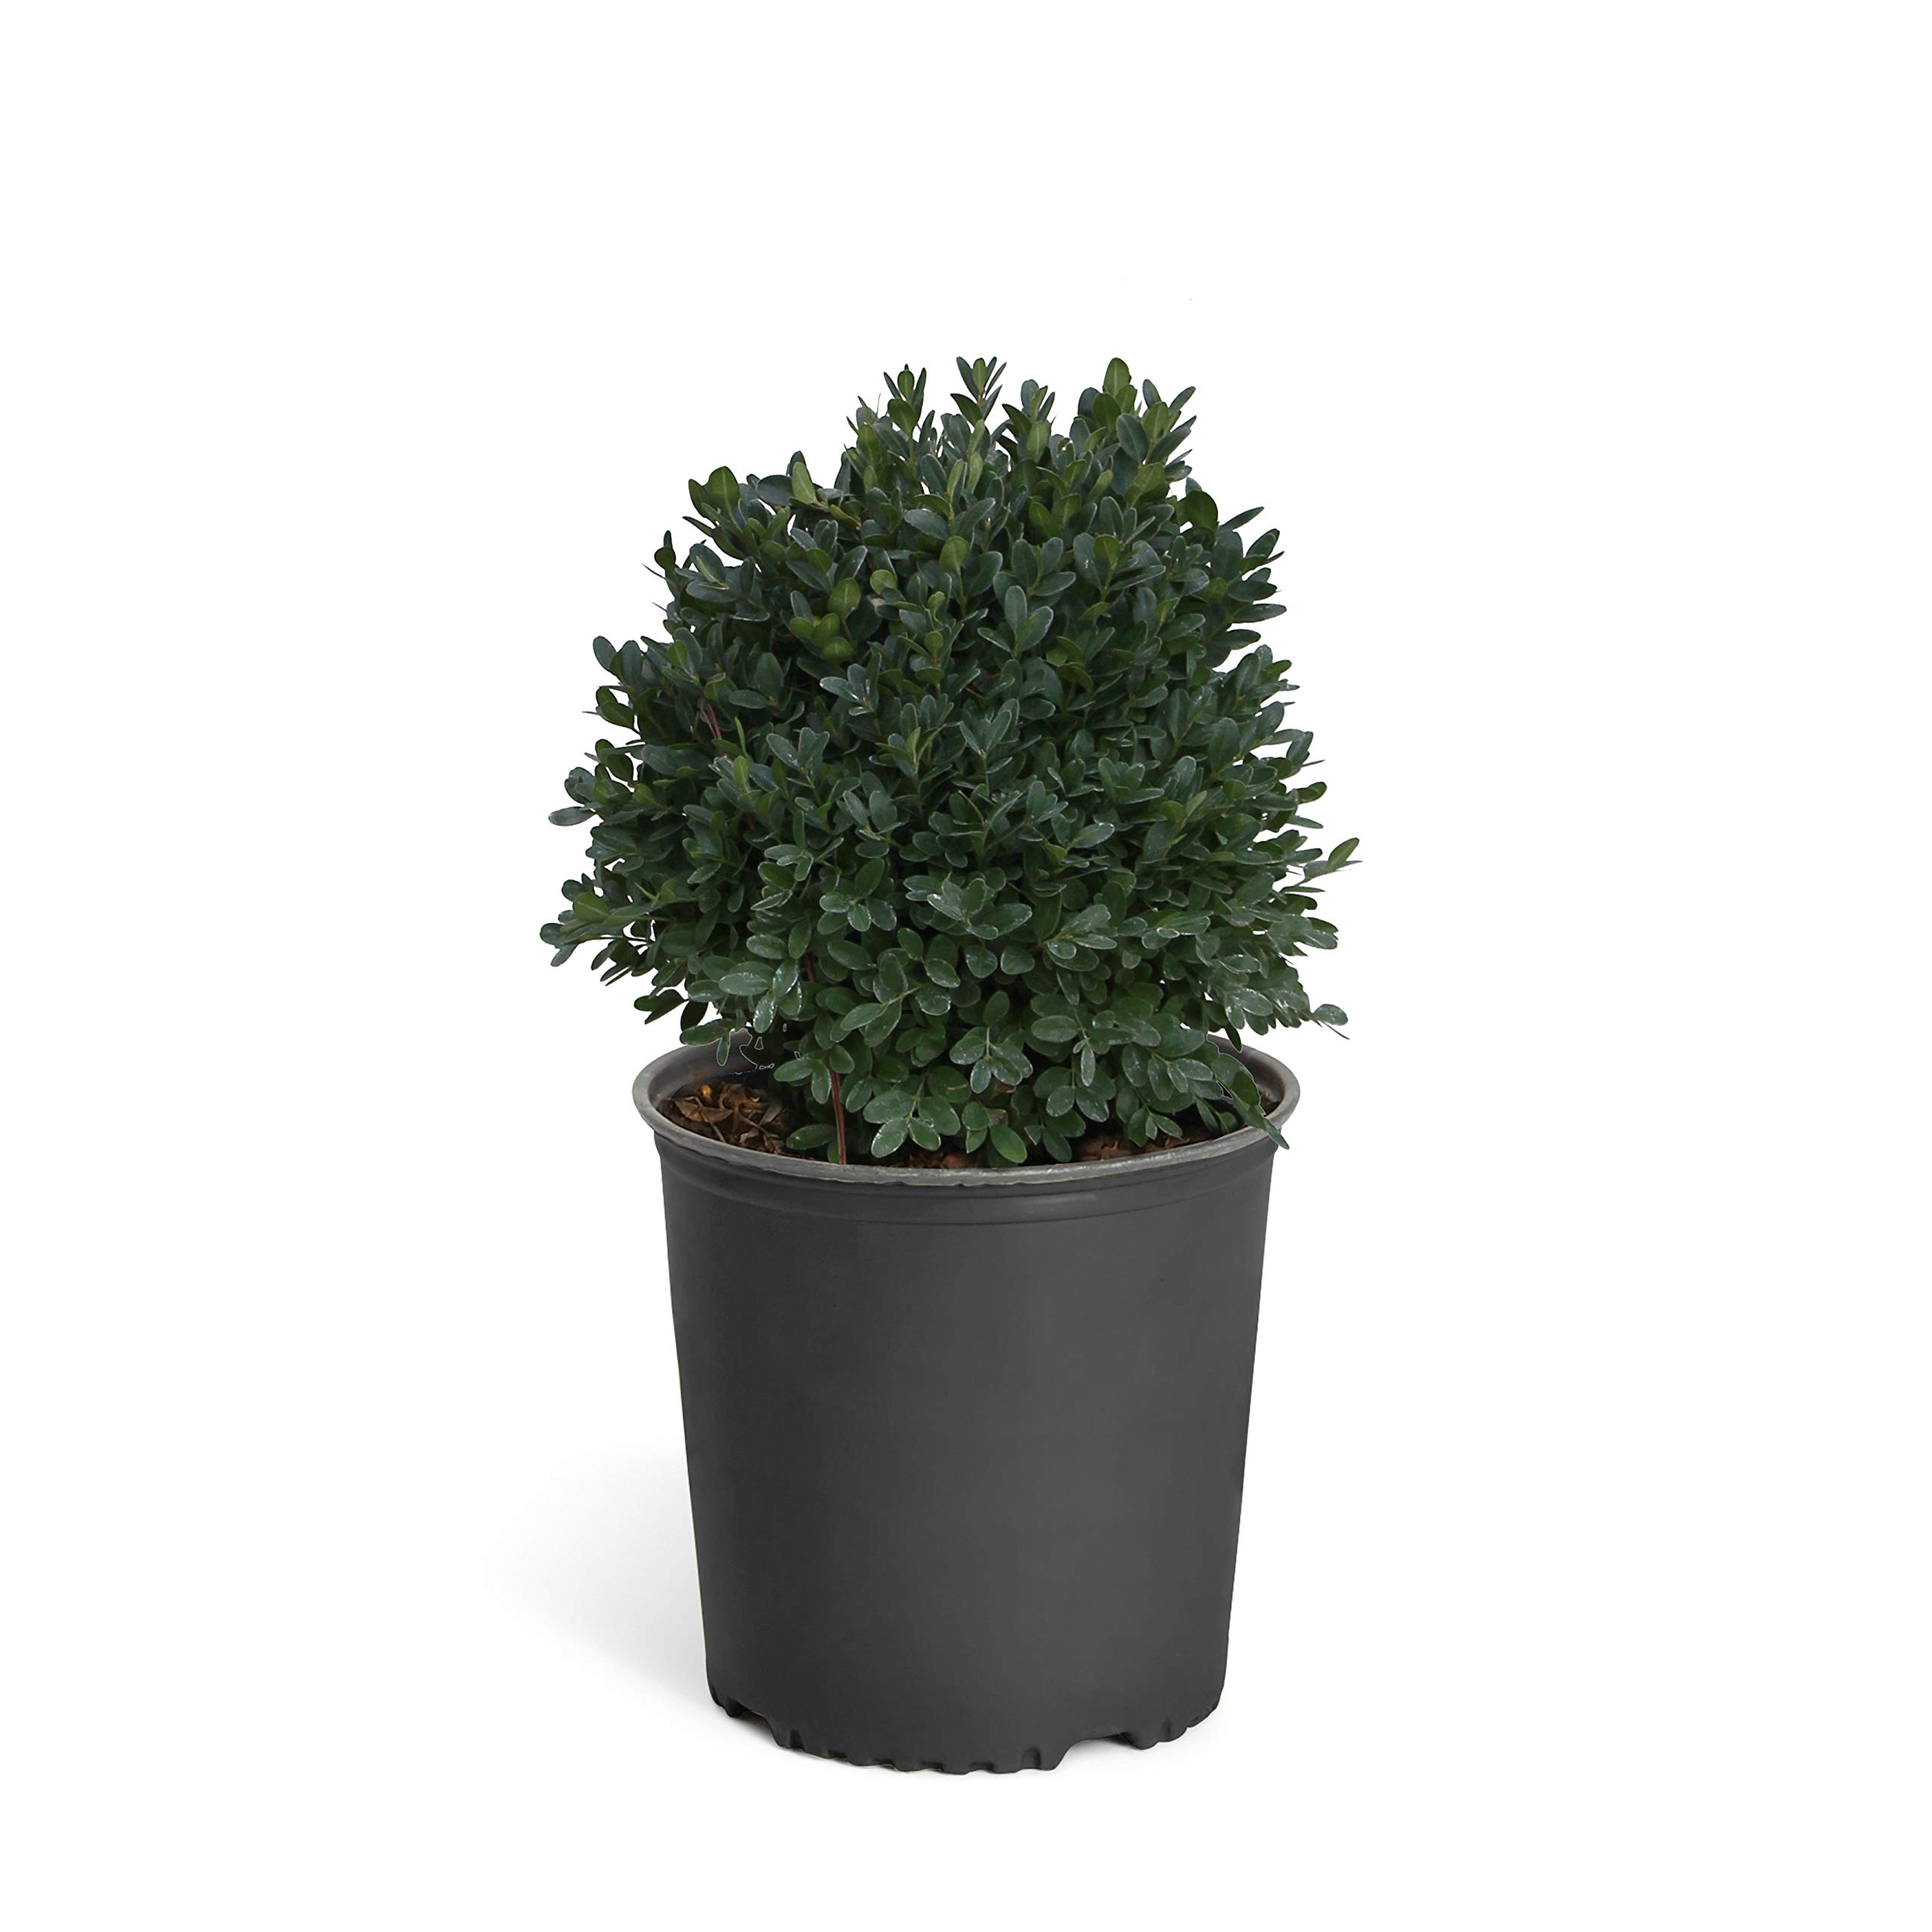 Dwarf English Boxwood - 2 Gallon by Brighter Blooms (Image #1)